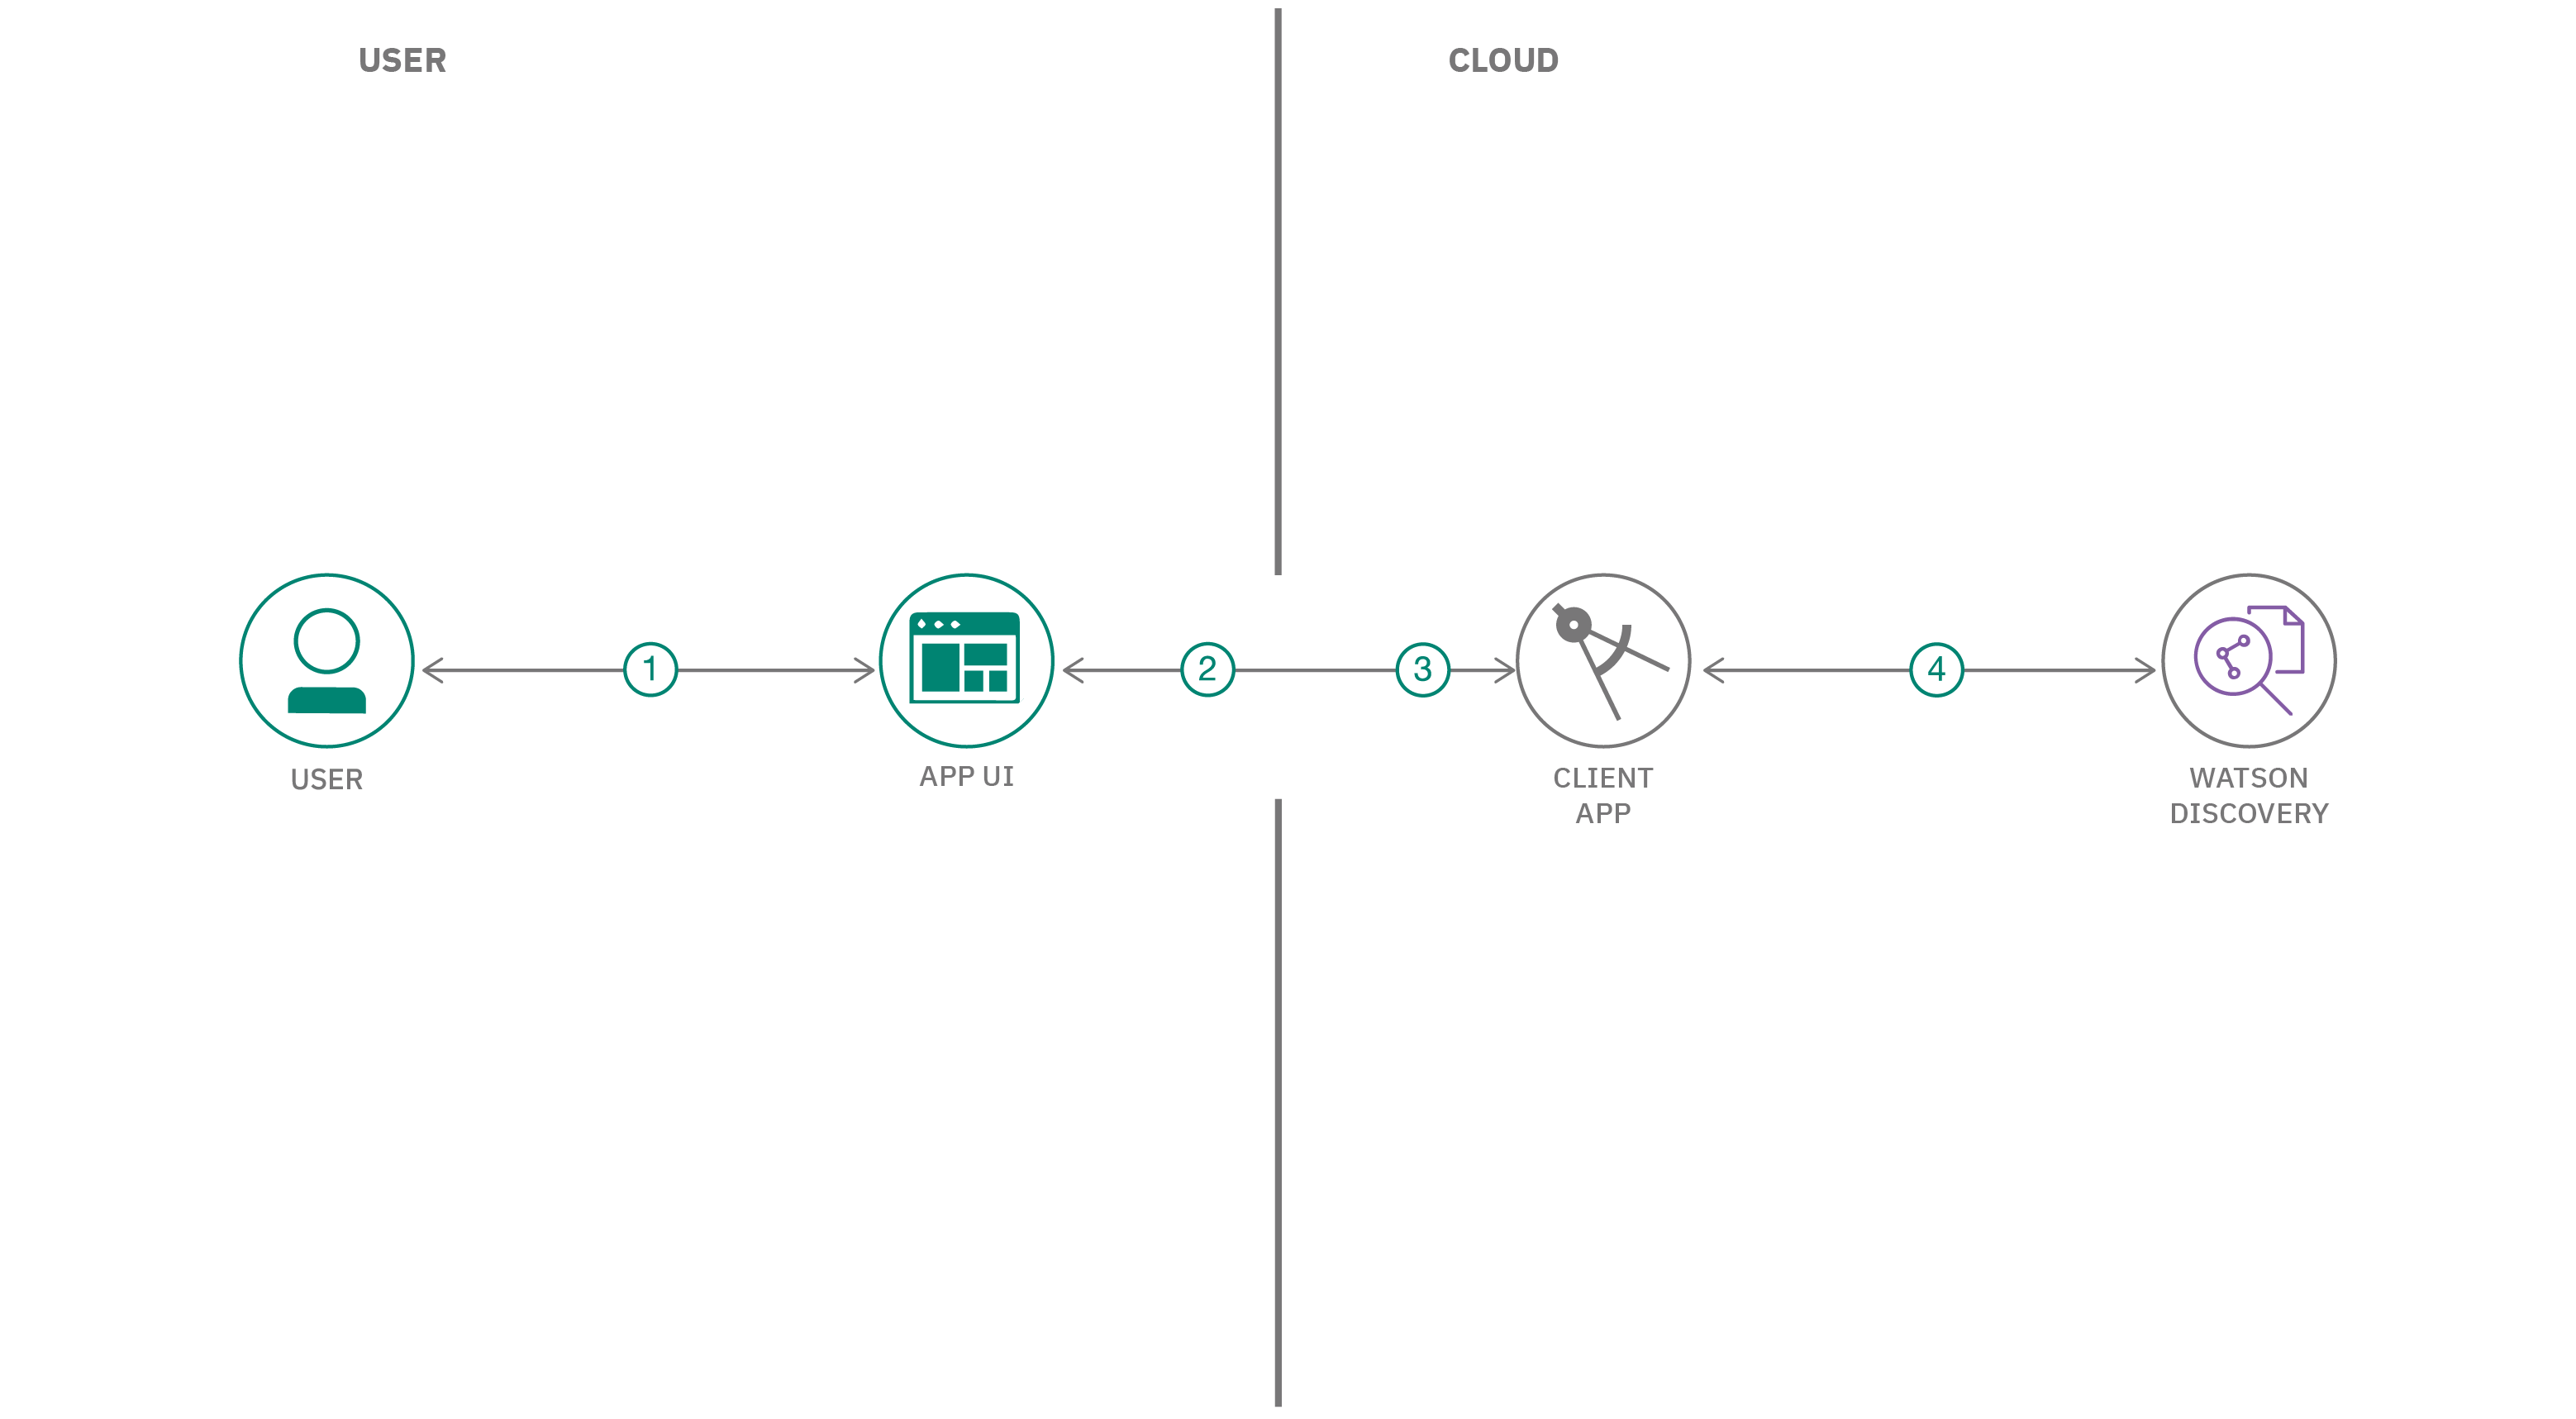 Retrieve and visualize relevant information flow